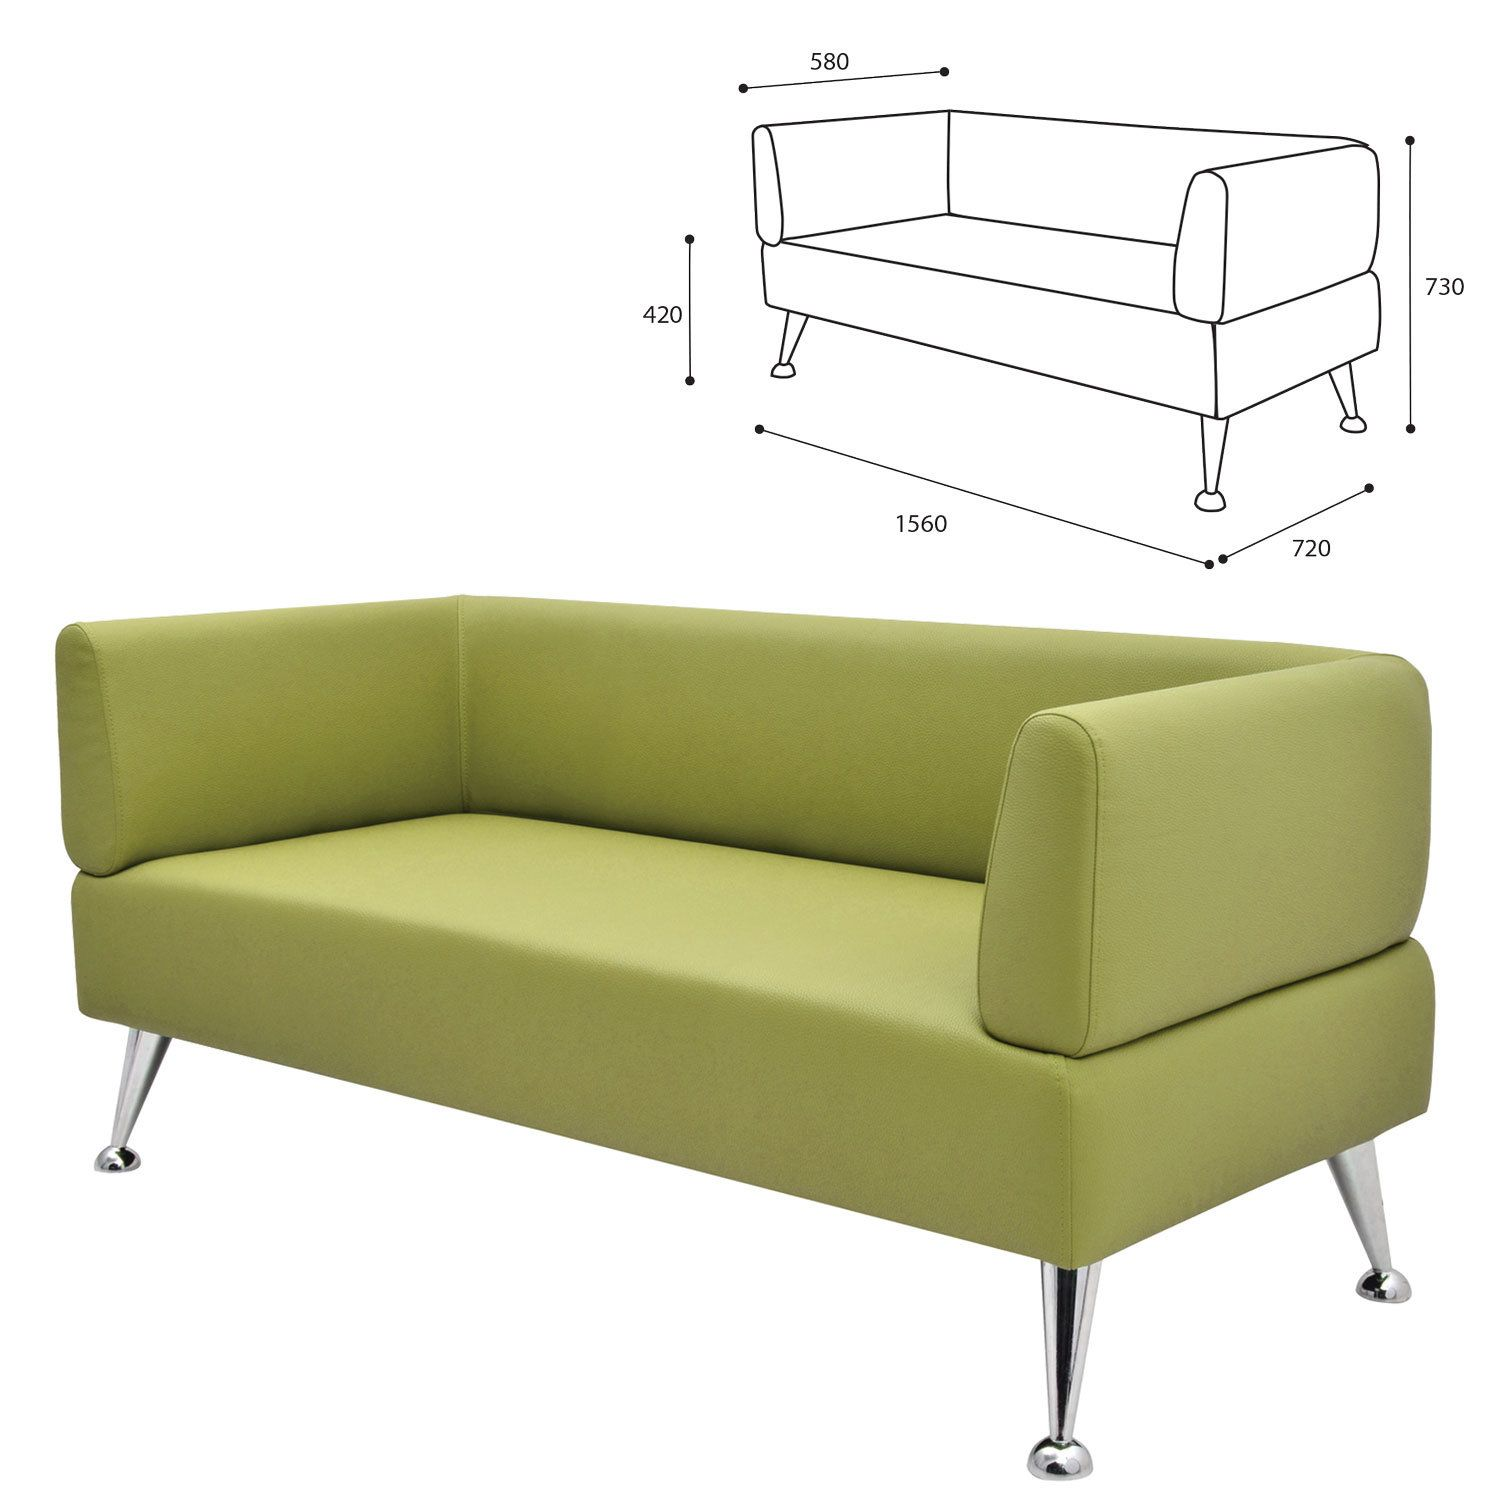 """GARTLEX / Soft three-seater sofa """"Nord"""", """"V-700"""", 1560x720x730 mm, with armrests, eco-leather, light green"""